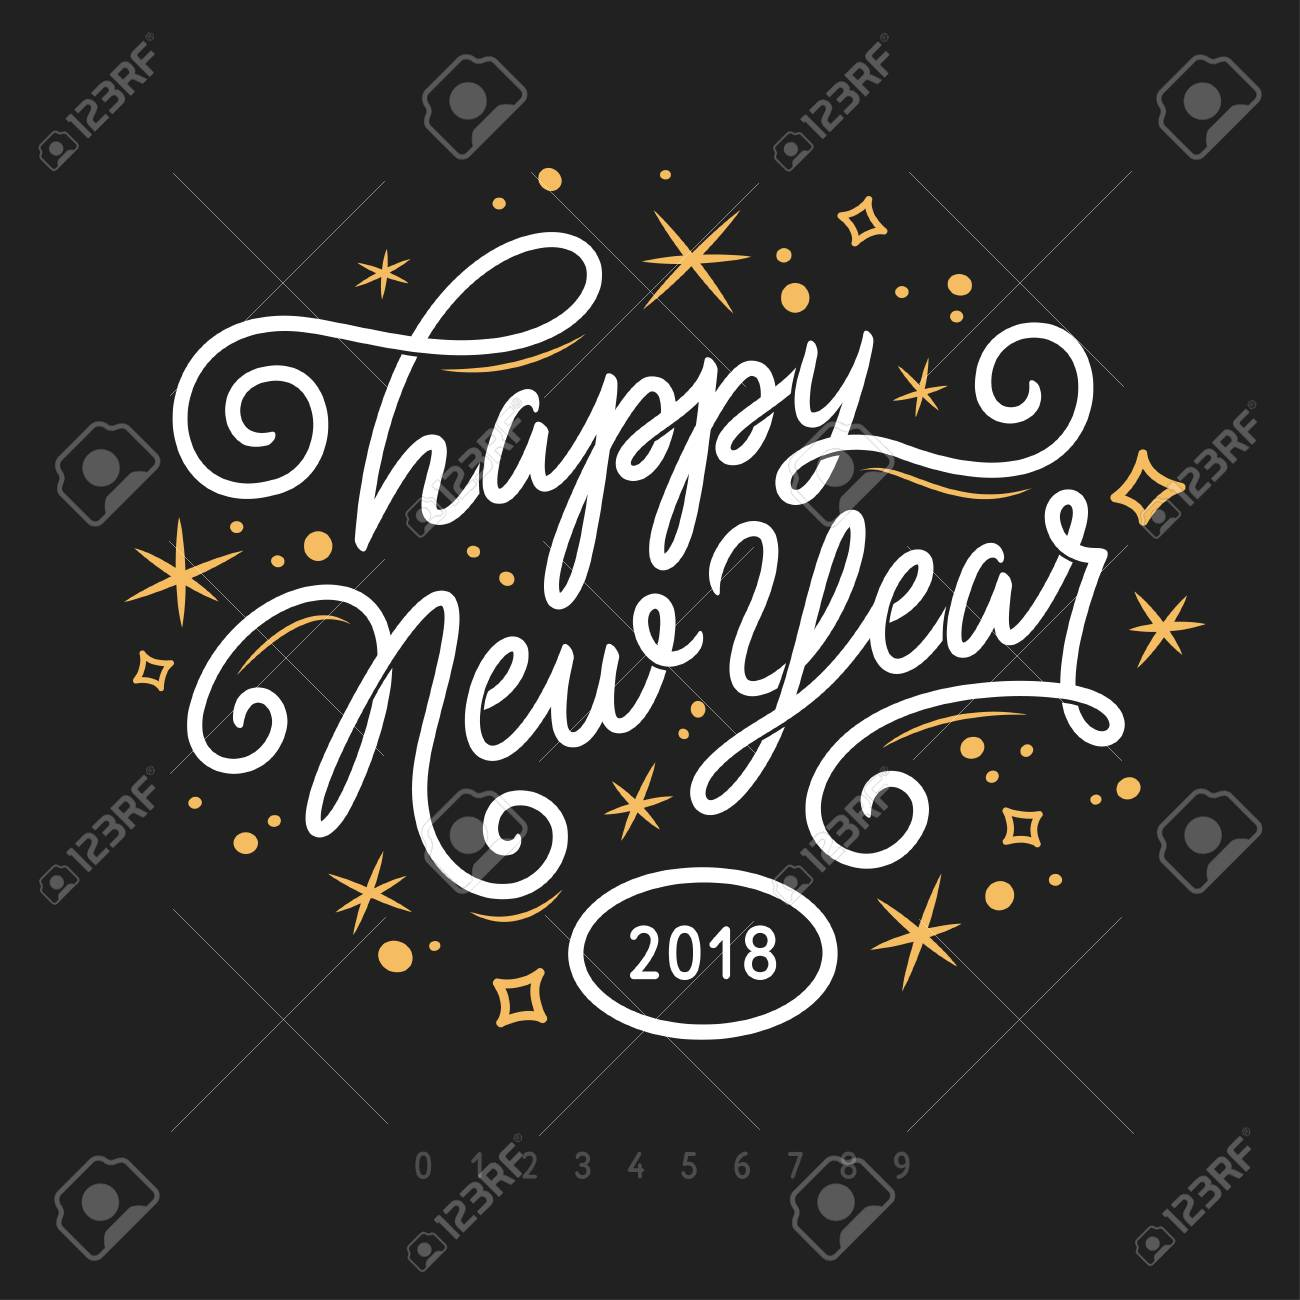 happy new year 2018 lettering template greeting card or invitation vector vintage illustration